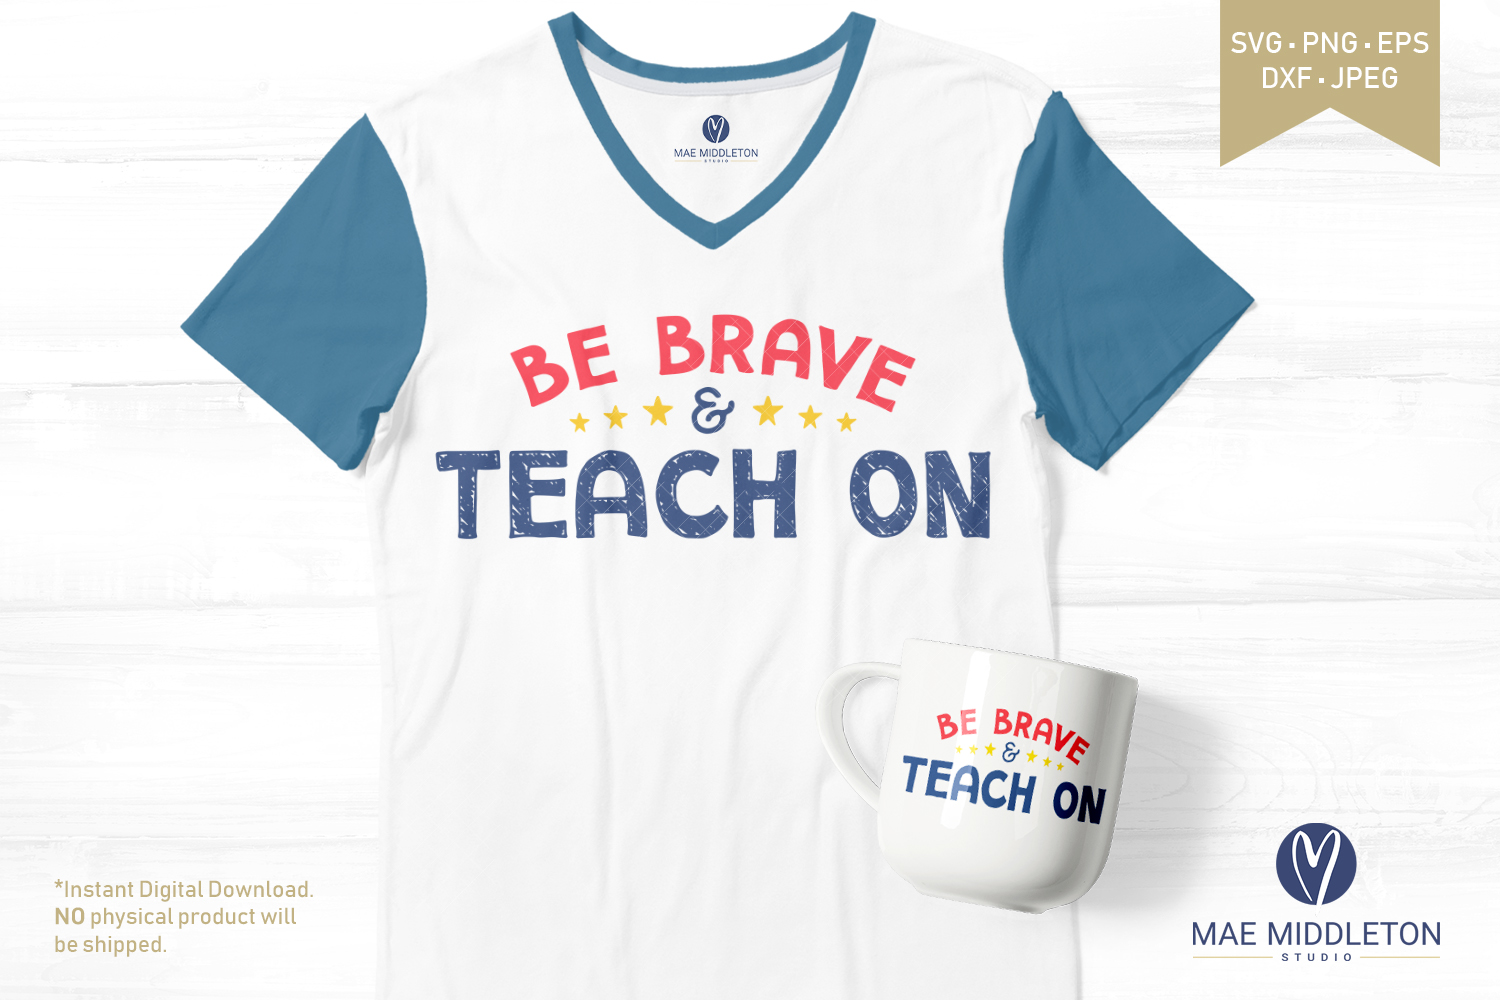 Be Brave & Teach on - printables, svg cut files example image 2